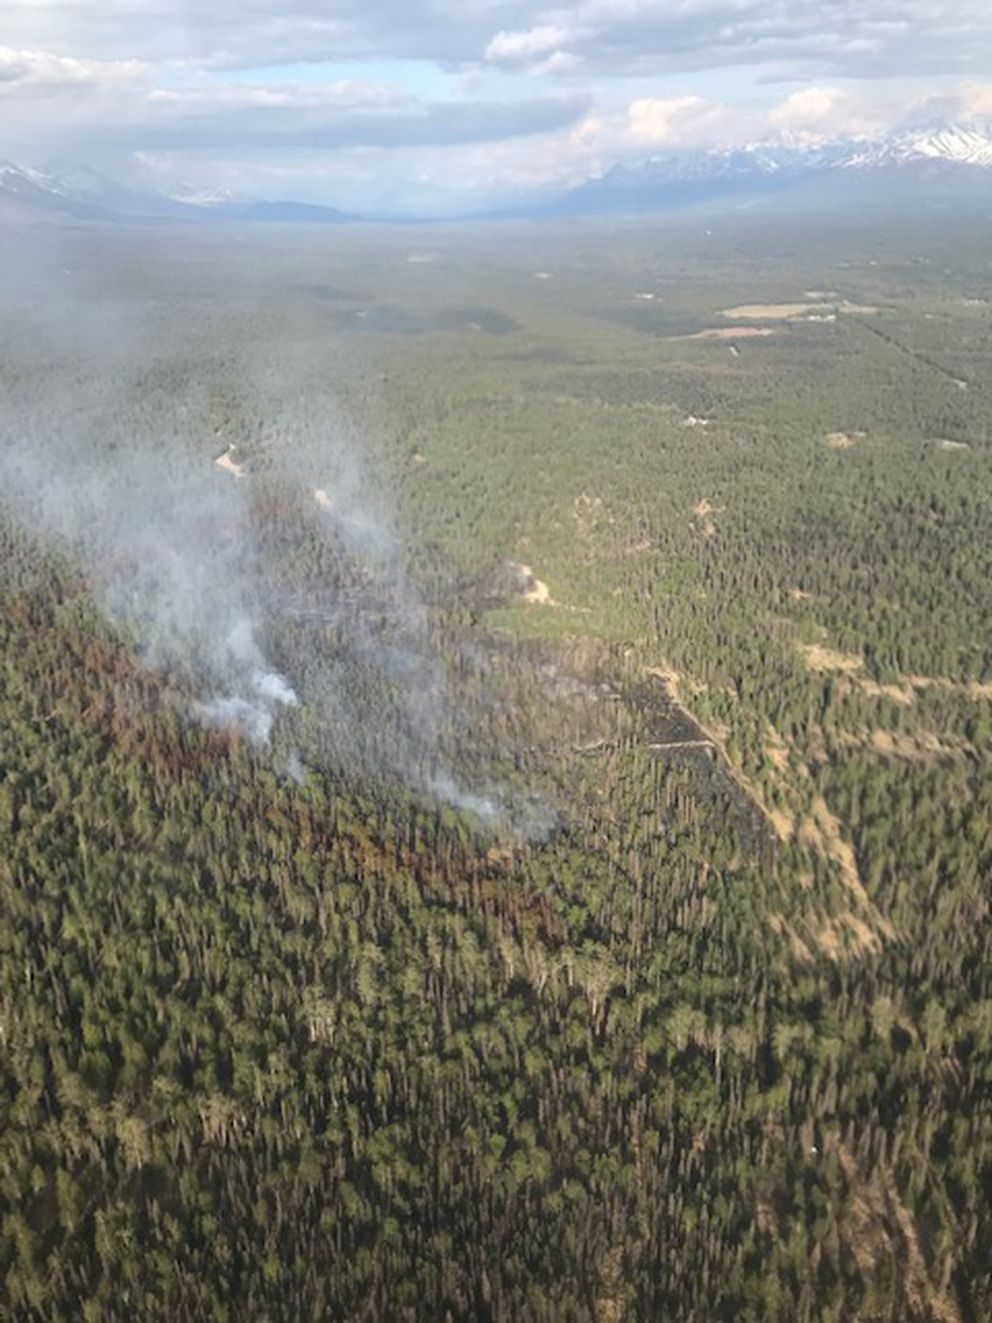 An aerial photo taken at 7 p.m. by Division of Forestry air attack personnel shows a significant reduction in smoke being produced by the Moose Meadows Fire as a result of aerial and ground suppression efforts. (Photo by Duane Morris/Alaska Division of Forestry.)